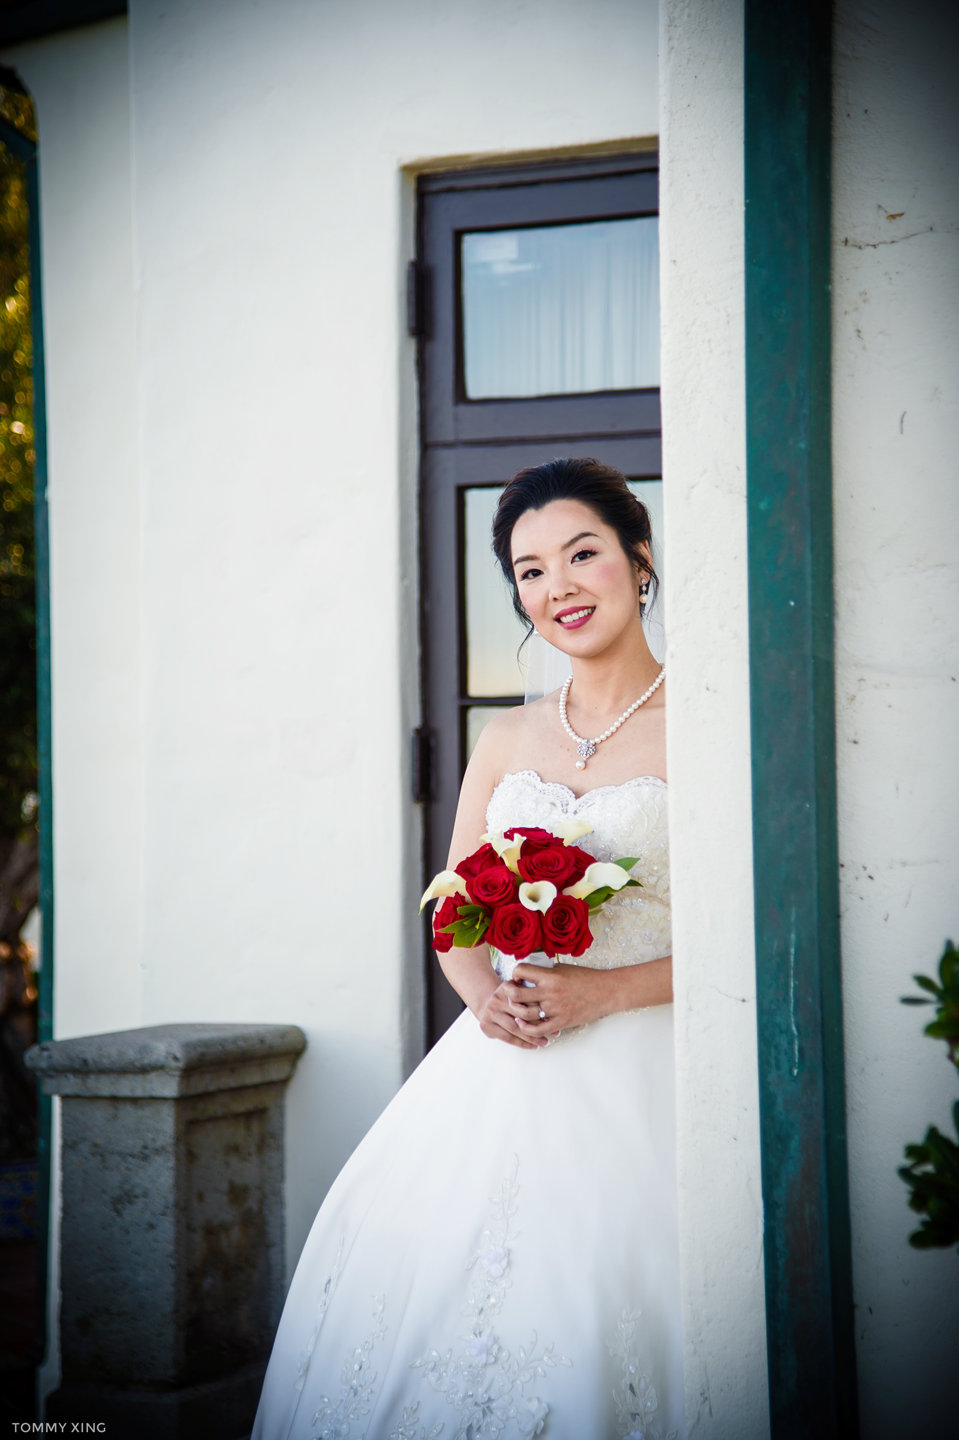 Los Angeles Wedding Photography Neighborhood Church Ranho Palos Verdes  Tommy Xing Photography 洛杉矶旧金山婚礼婚纱照摄影师029.jpg